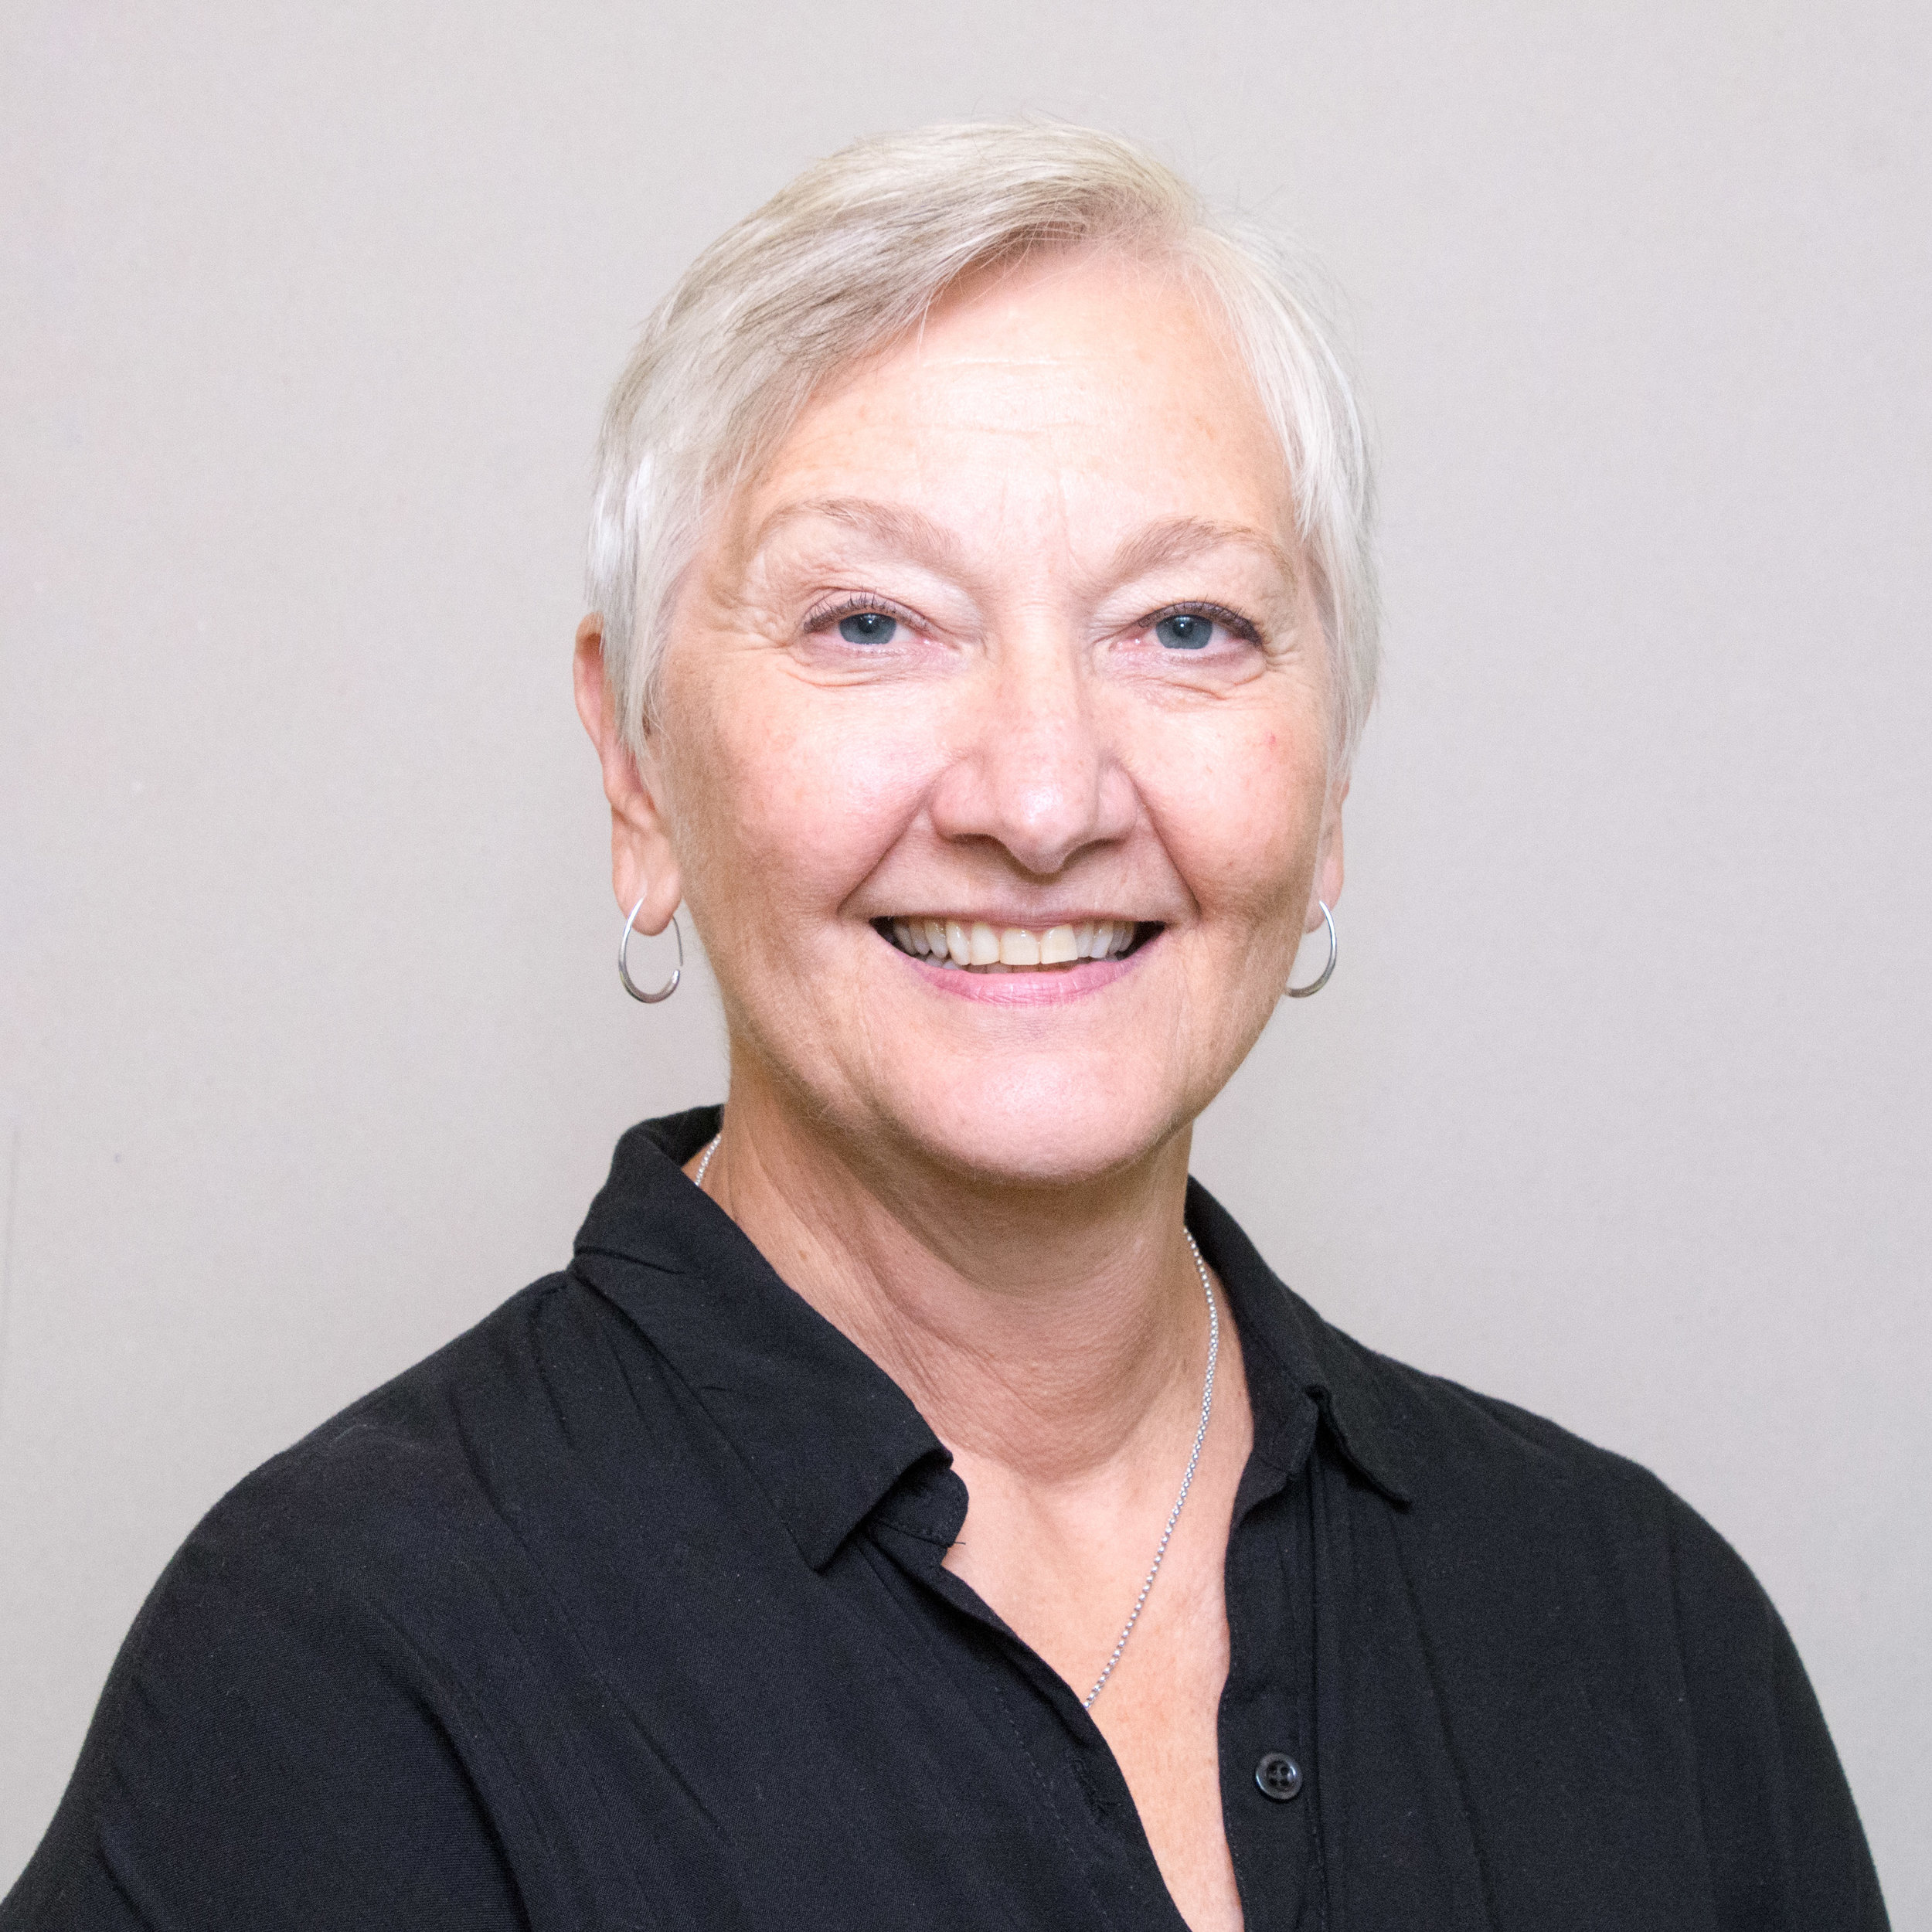 Helen Caudle, Principal, 4C, Caudle Crisis & Communications Counsel